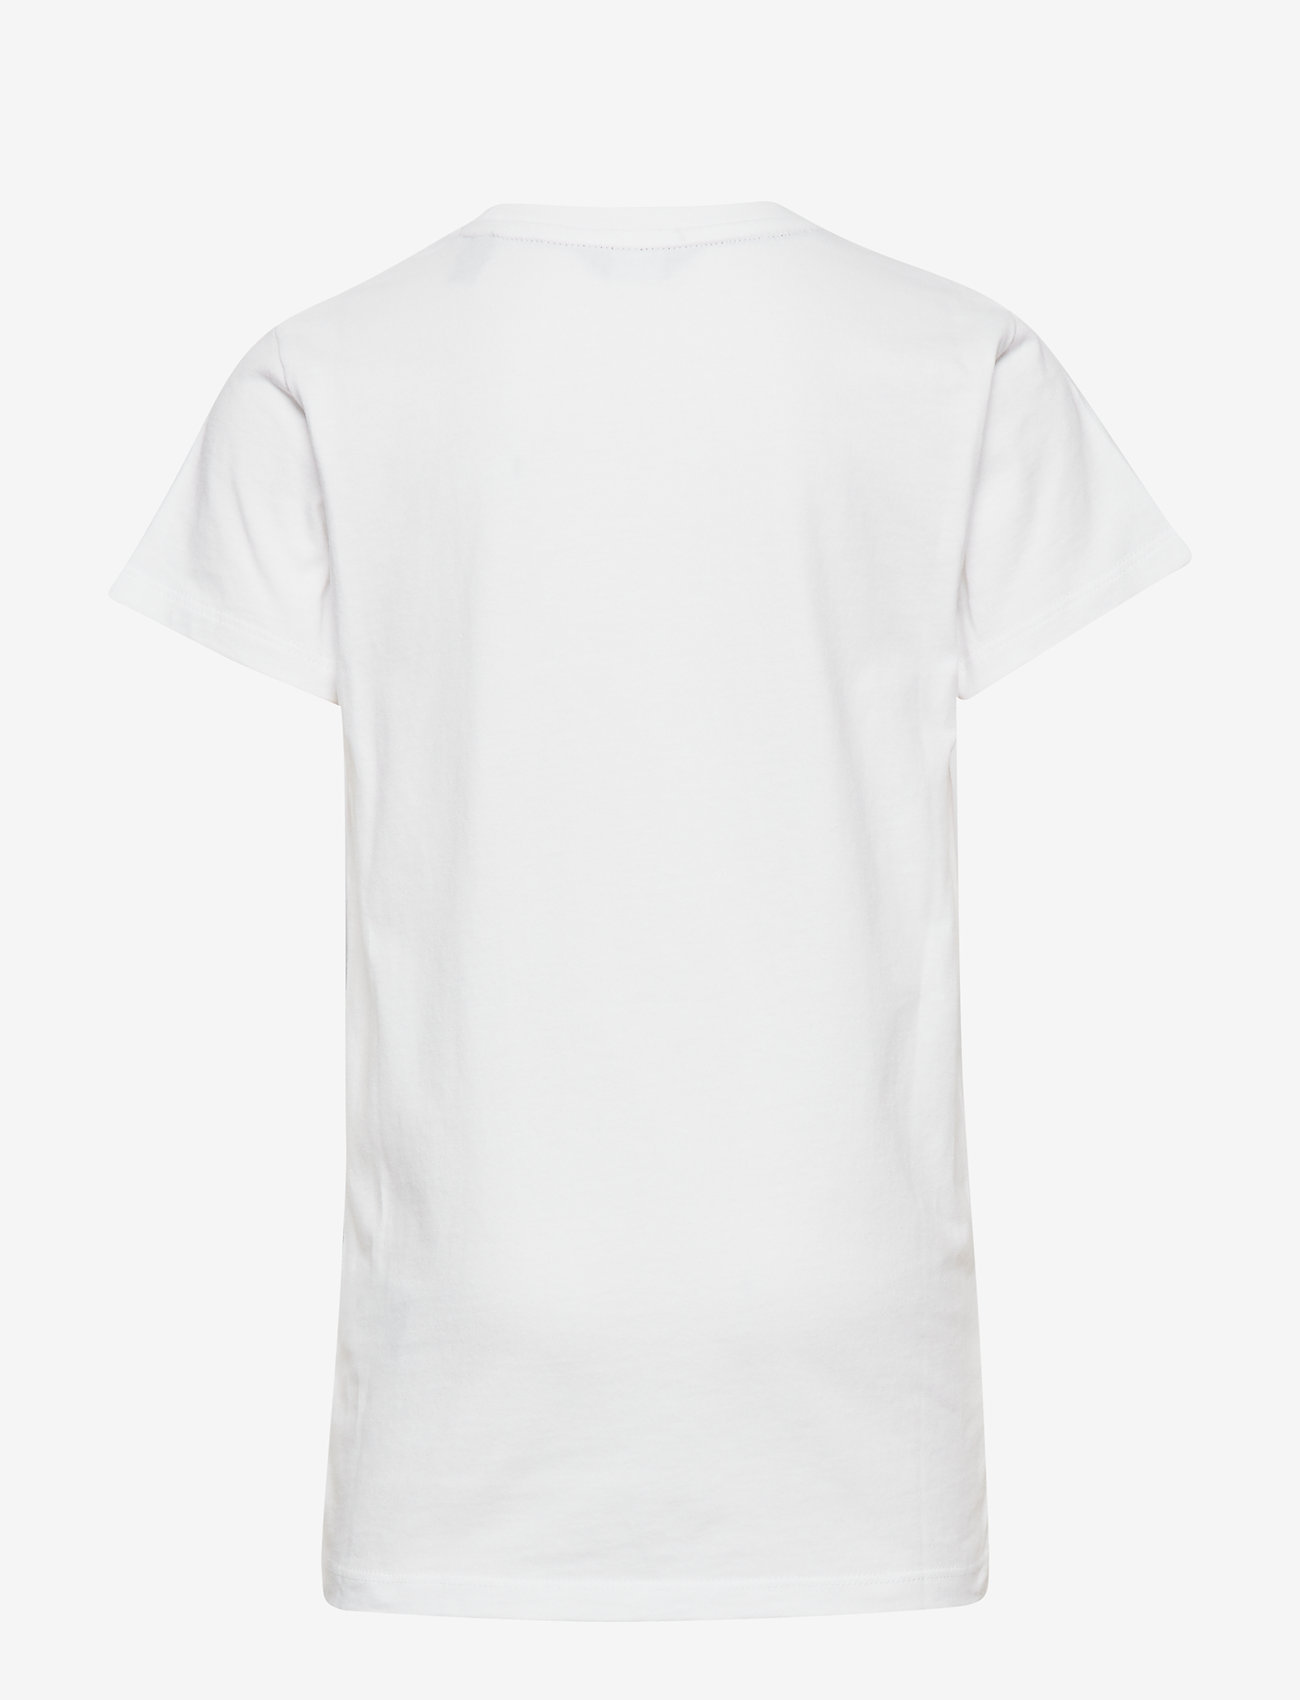 GANT - THE ORIGINAL SS T-SHIRT - kurzärmelige - white - 1